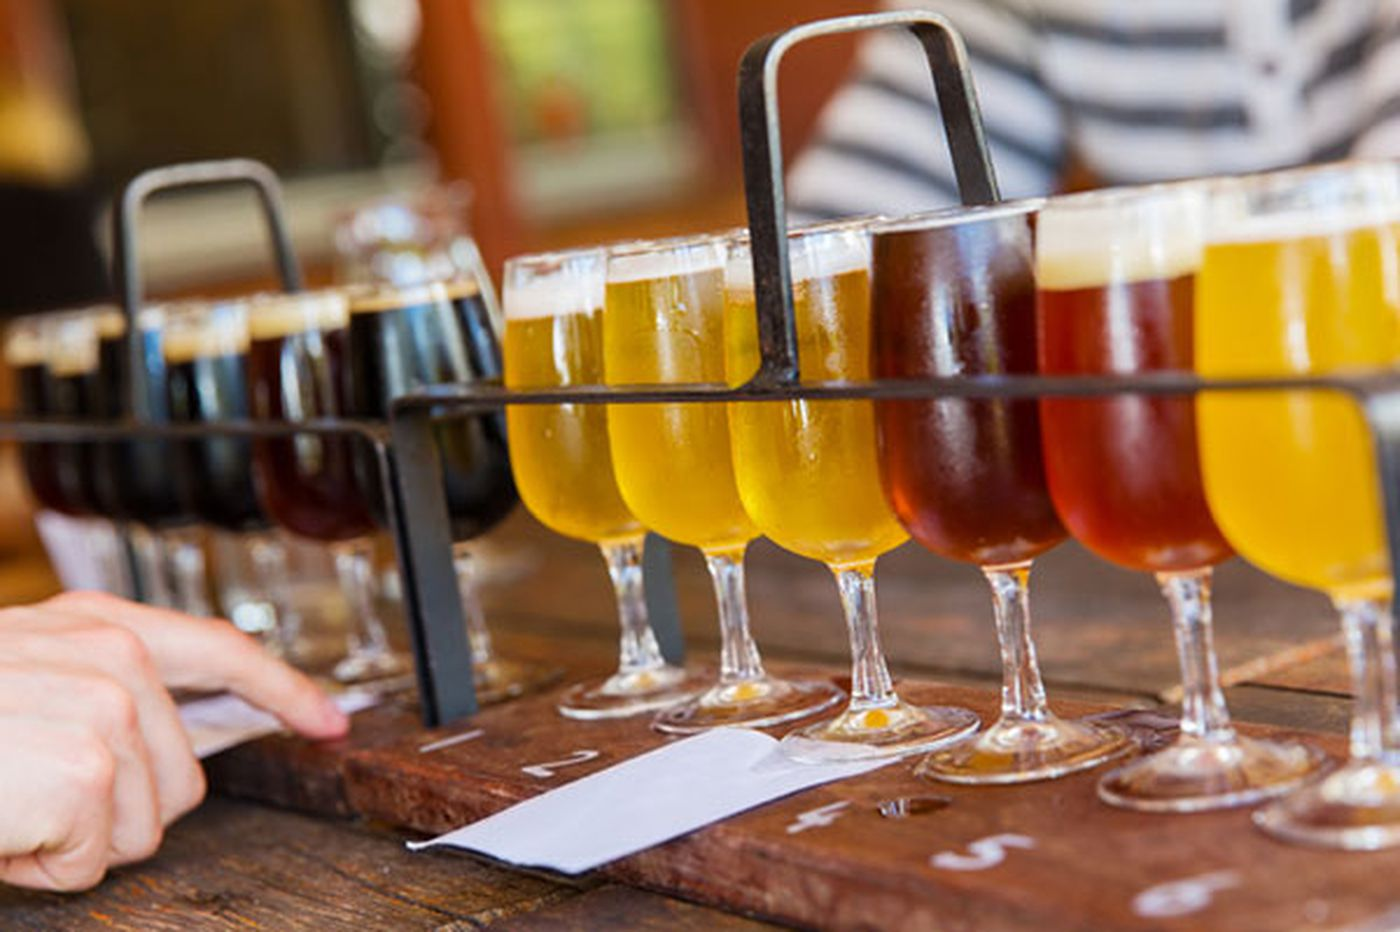 Over-hyped and over-hopped, craft brewing needs some fresh strategies